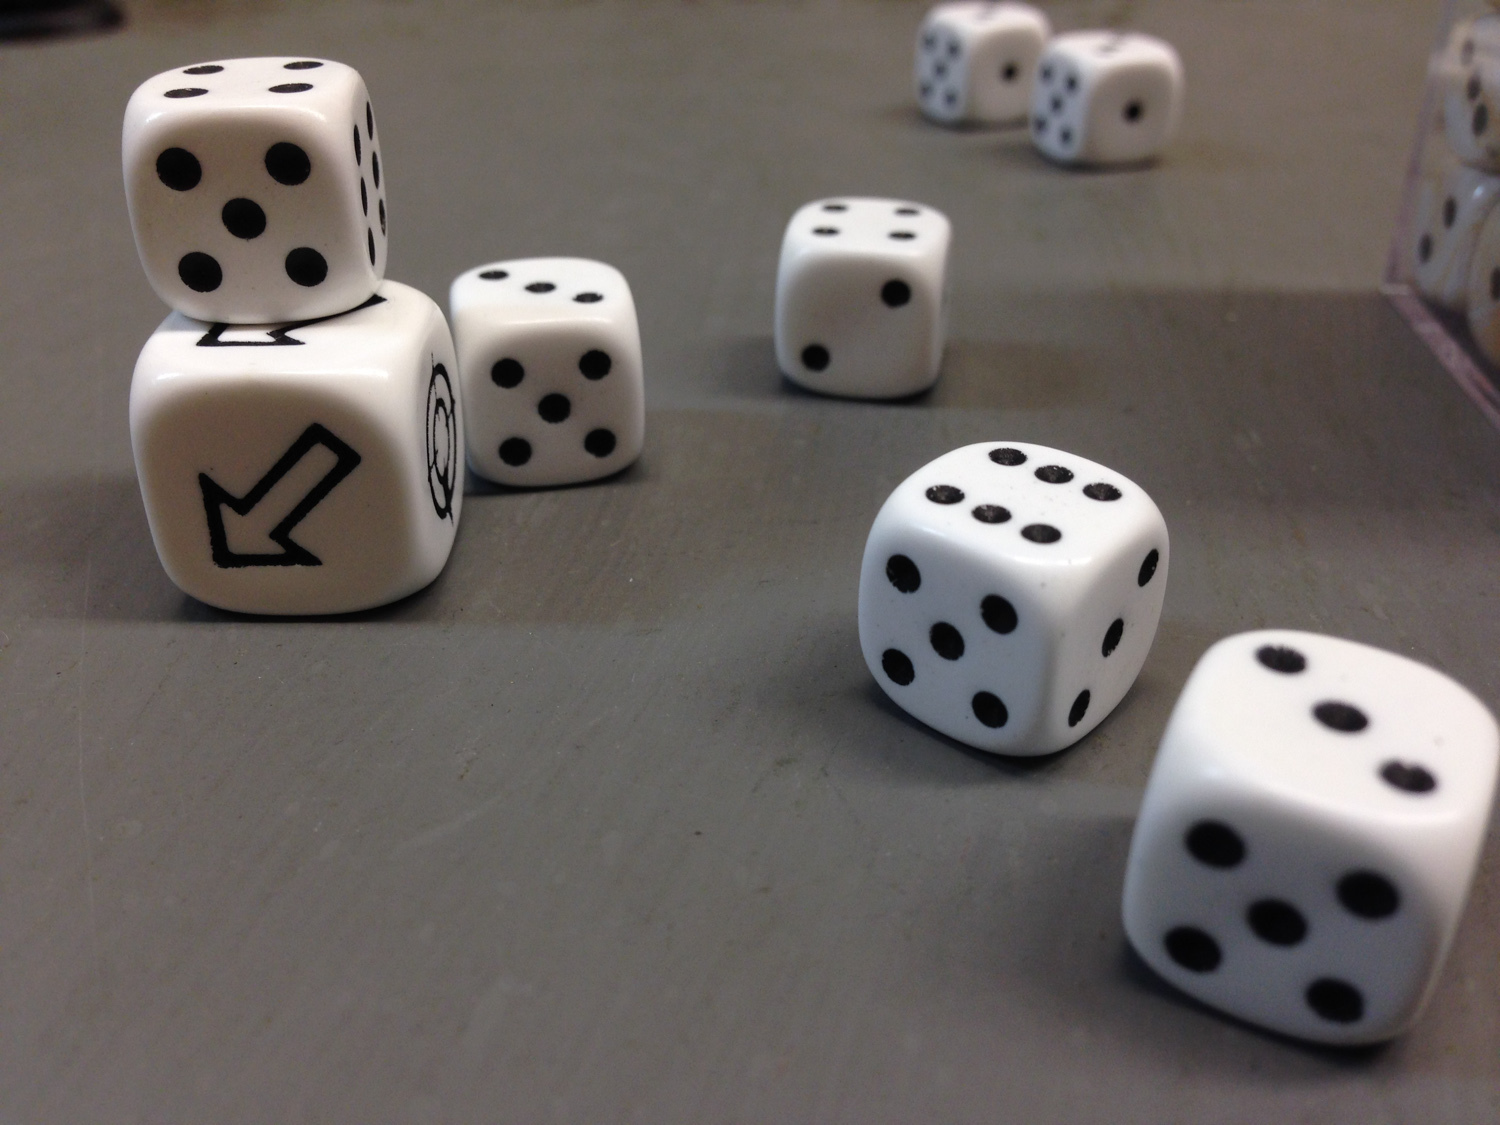 Another role of the dice